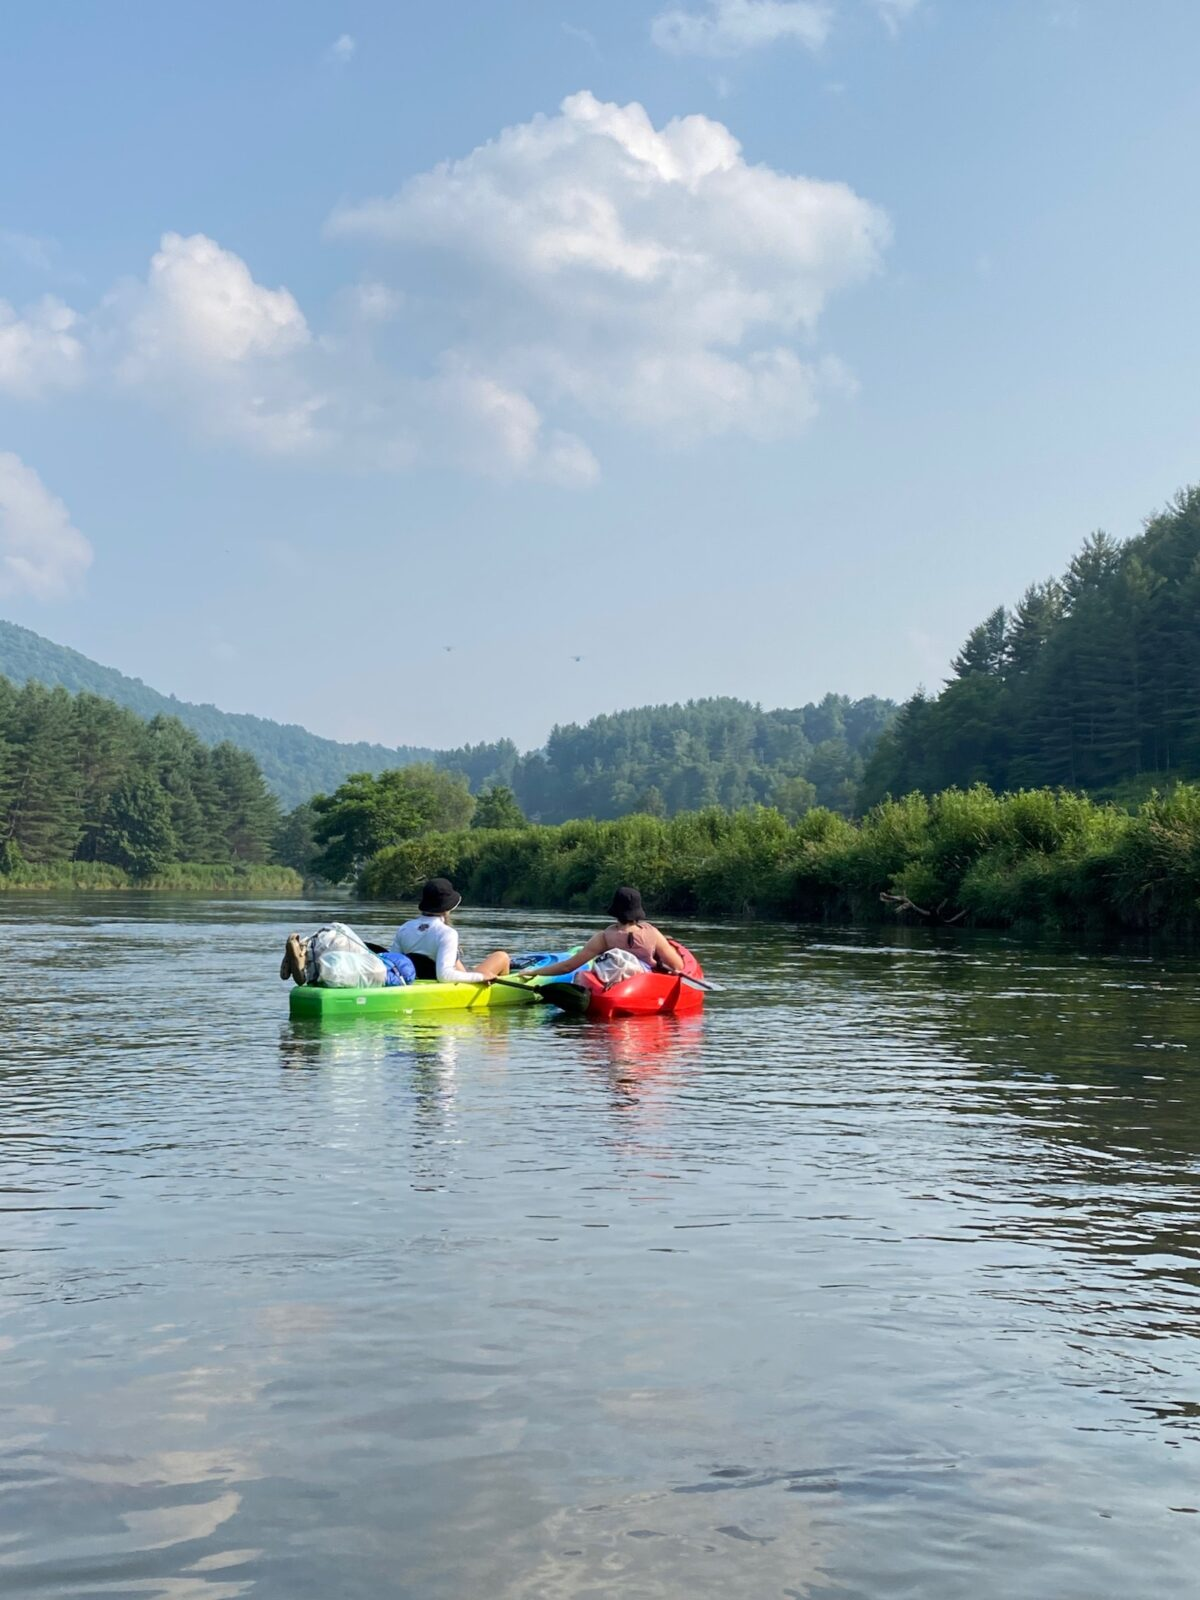 Two people in kayaks on a river in North Carolina.